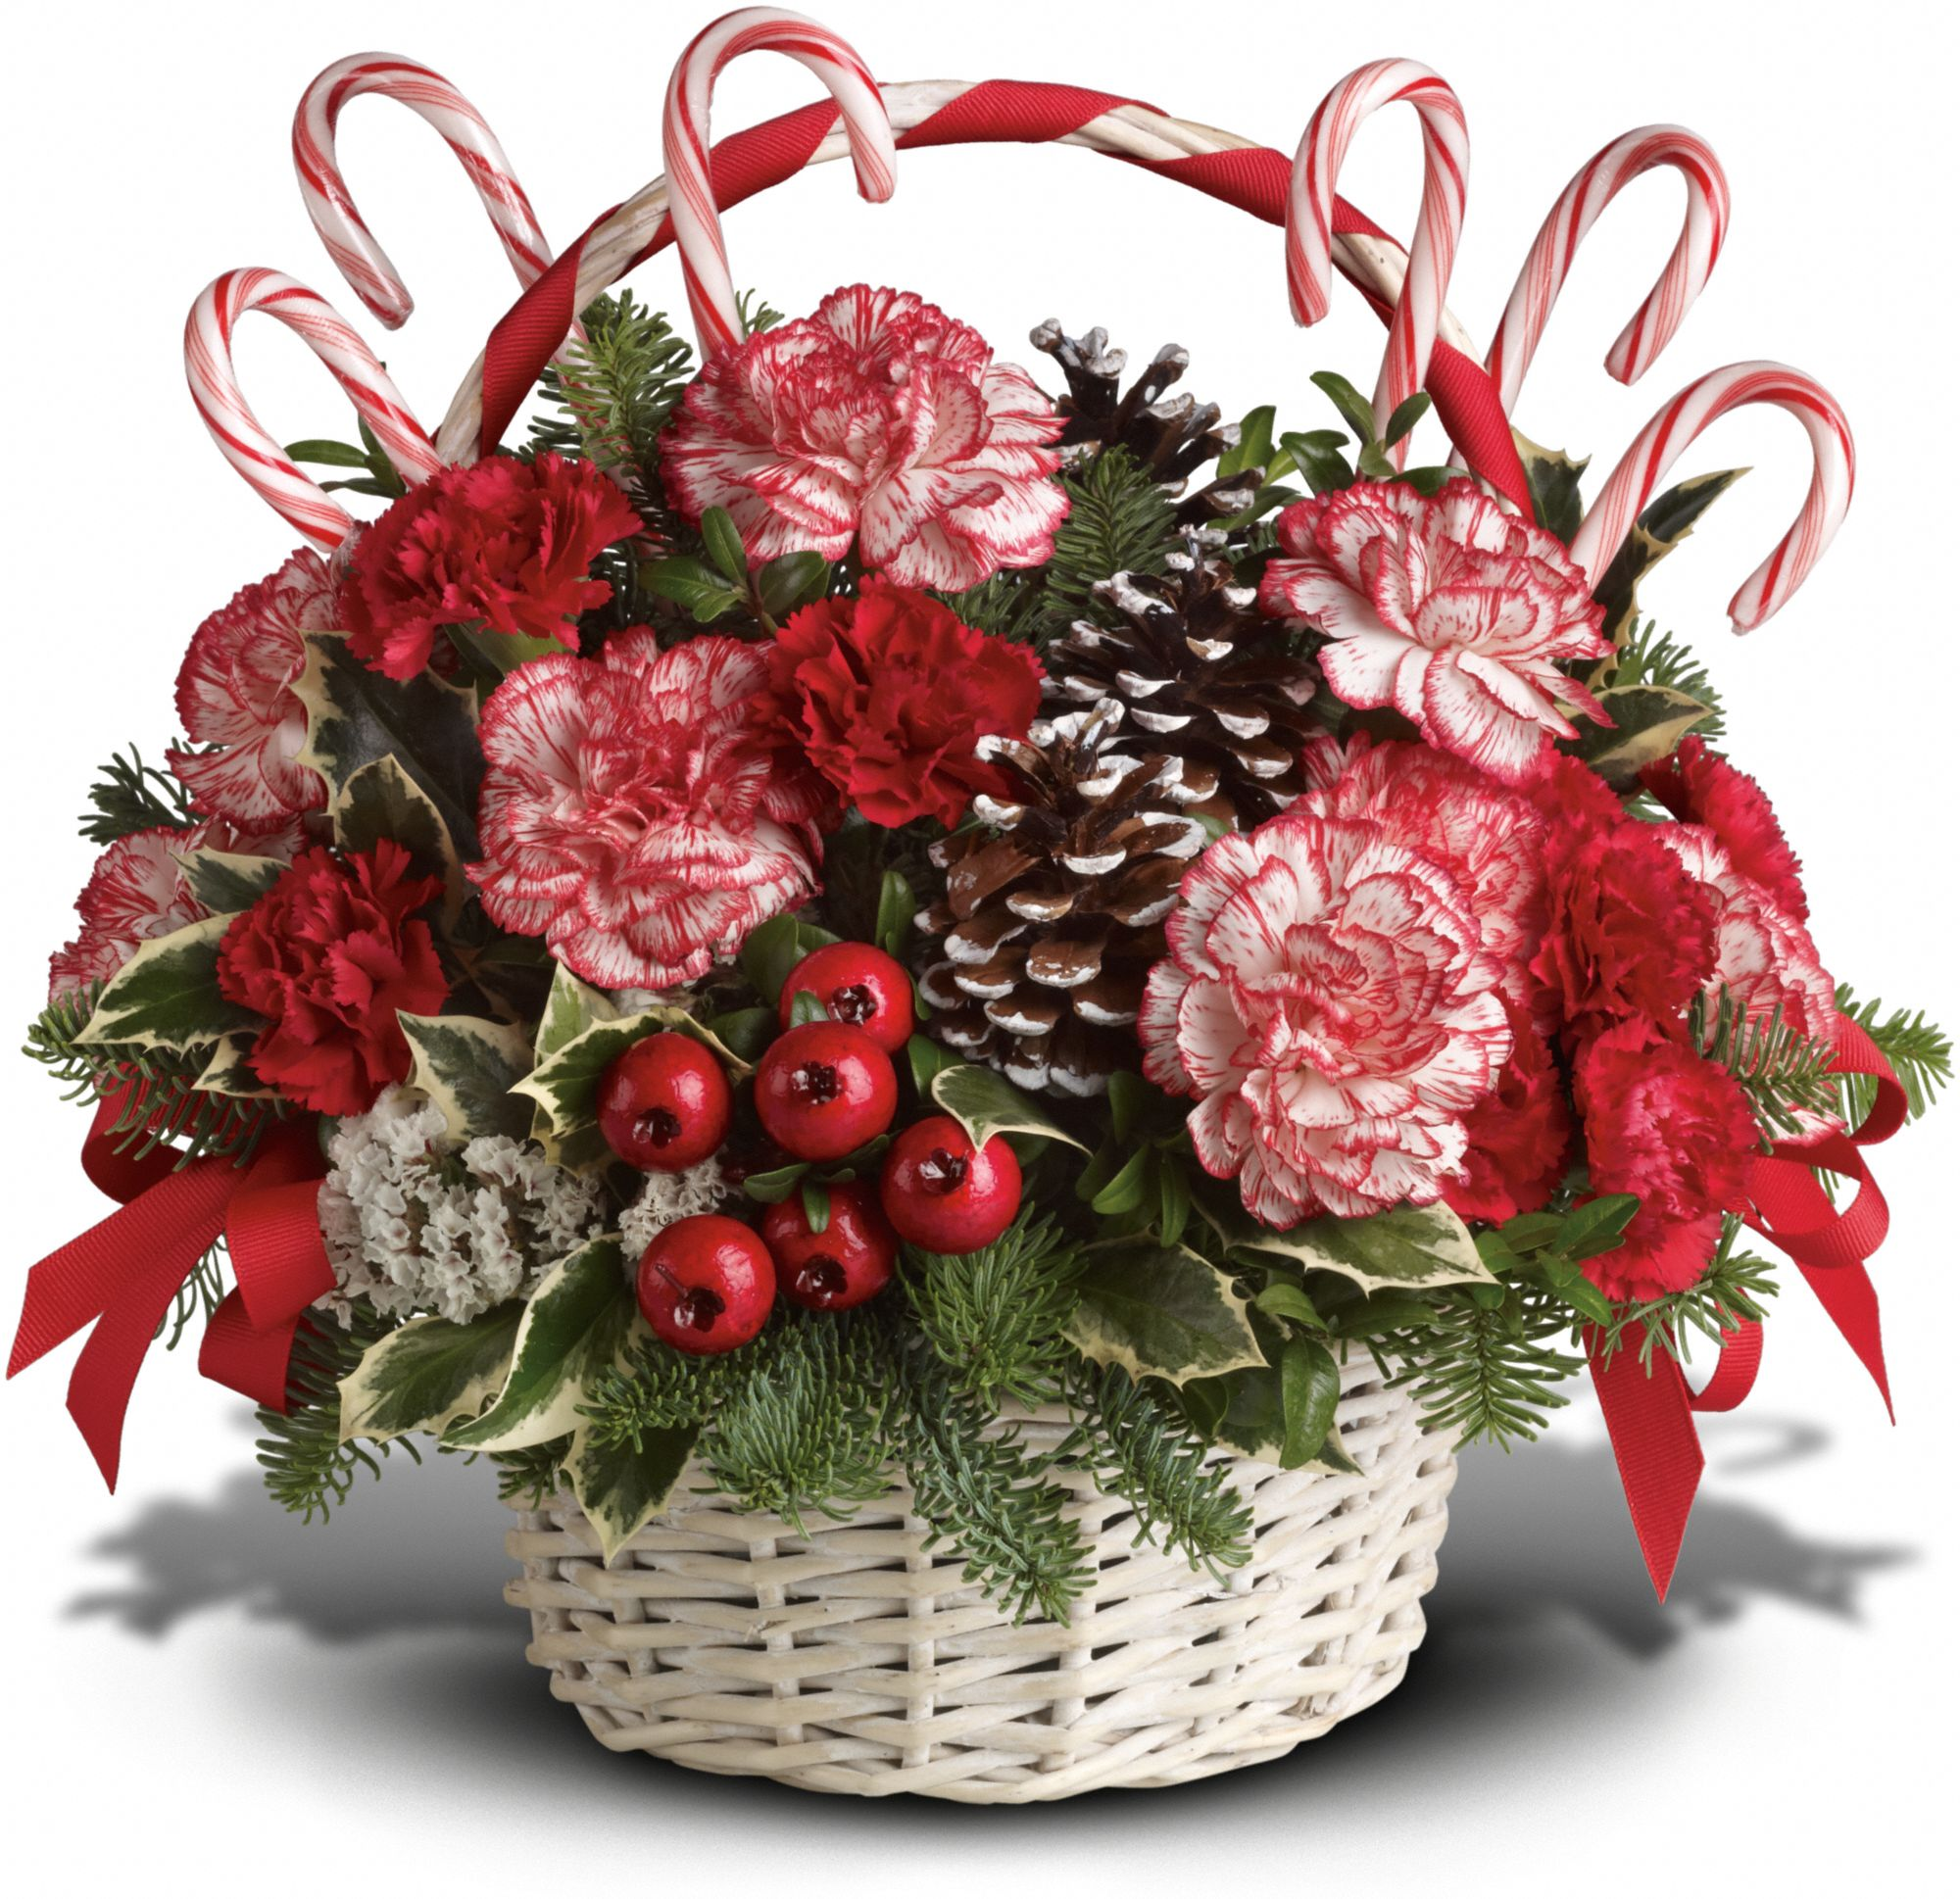 Candy Cane Christmas Flowers Candy Cane Christmas Flower